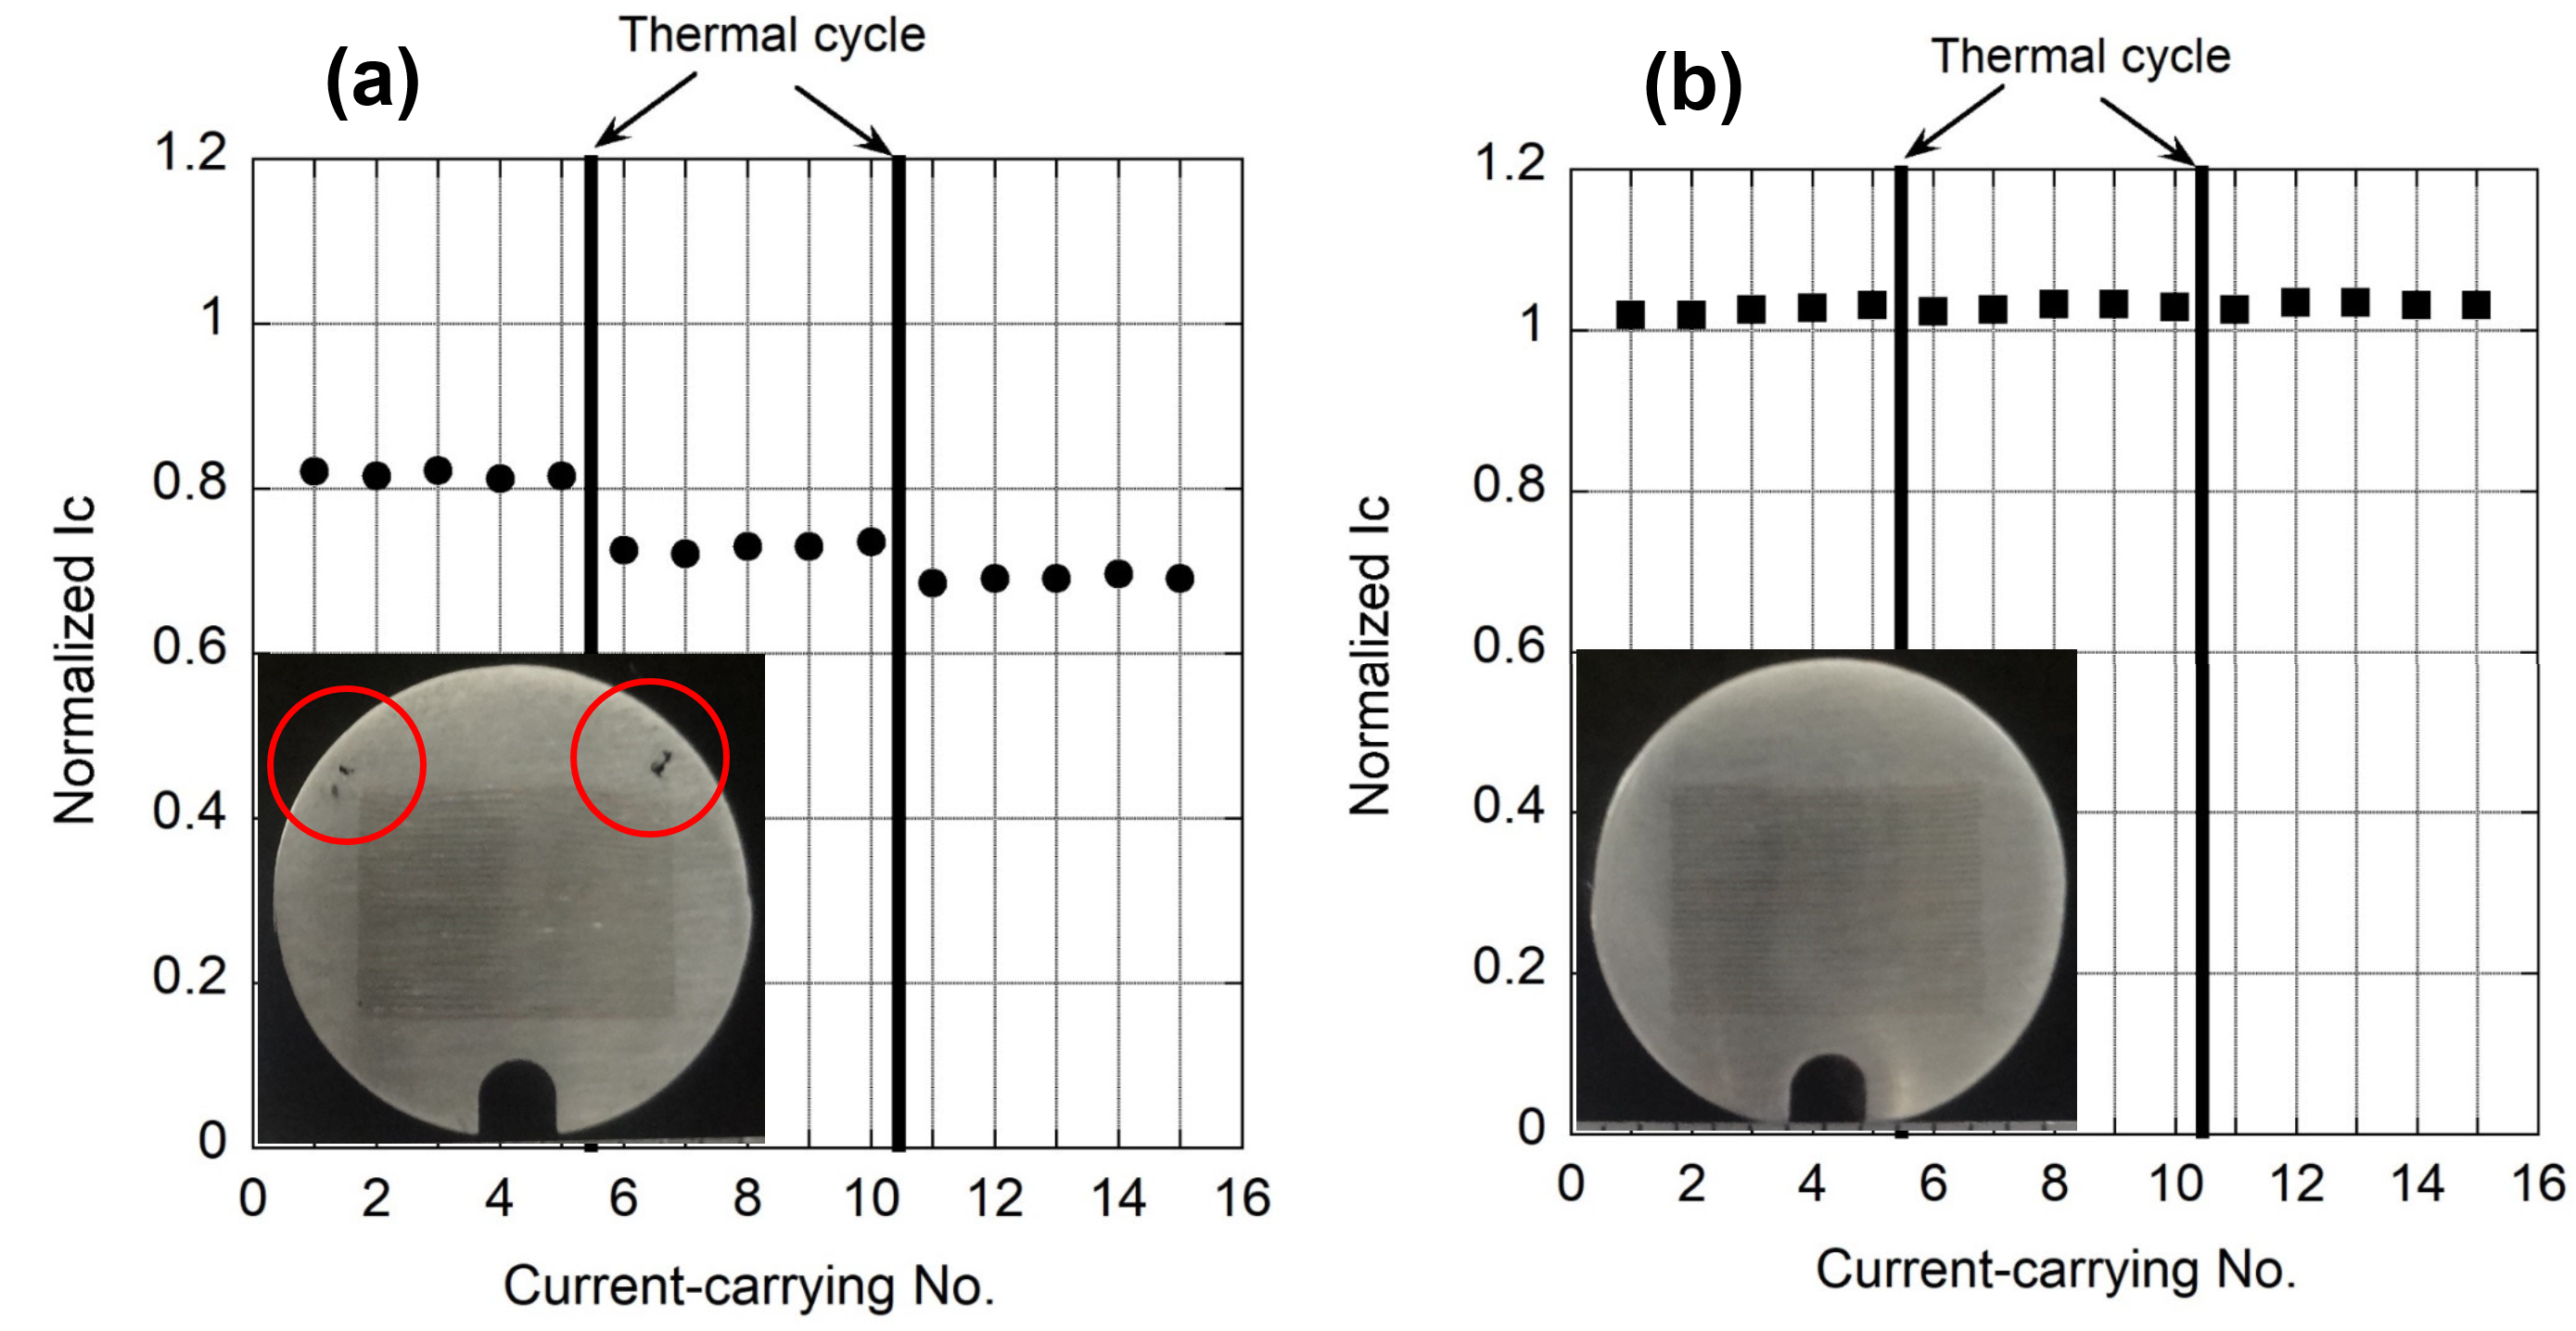 Dependence of the measured critical current (normalized by the expected value from the single-tape property) of the FAIR conductor on the current-carrying number (up to 15 times including 2 thermal cycles) for (a) before and (b) after an optimization of the fabrication process. The tested conductor samples used limited number of REBCO tapes compared to the final specification. Photos of the cross-section of the conductor are also shown for each case. Note that cracks observed at two locations (indicated by circles) above the REBCO tape stack in the aluminium-alloy jacket in (a) disappeared in (b).